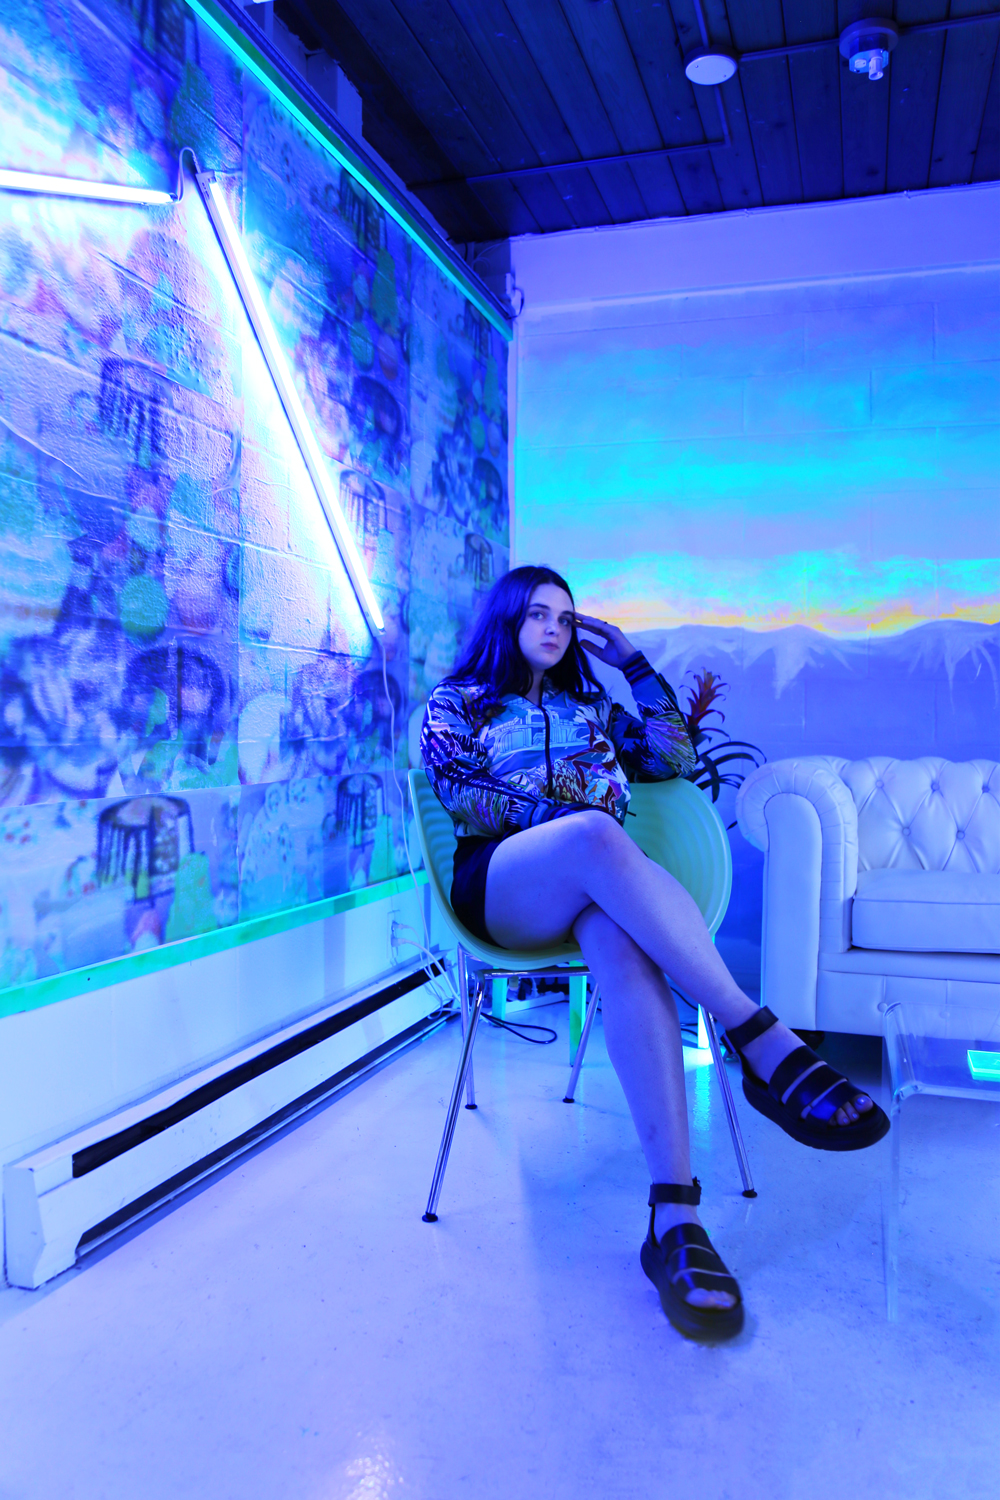 This enigmatic Seattle-based interior designer and artist is actualizing her evocative 3D interiors to their fullest fantasy. - Abby Dougherty, working under the moniker of Neon Saltwater, engages in stylistic references to construct these emotive, lush interior spaces.With her first solo exhibition, UNVIRTUAL,and recent installations at Seattle Art Museumand Out of Sight, Dougherty's work is exemplary for the craft's aesthetic potential to redefine spatiality.